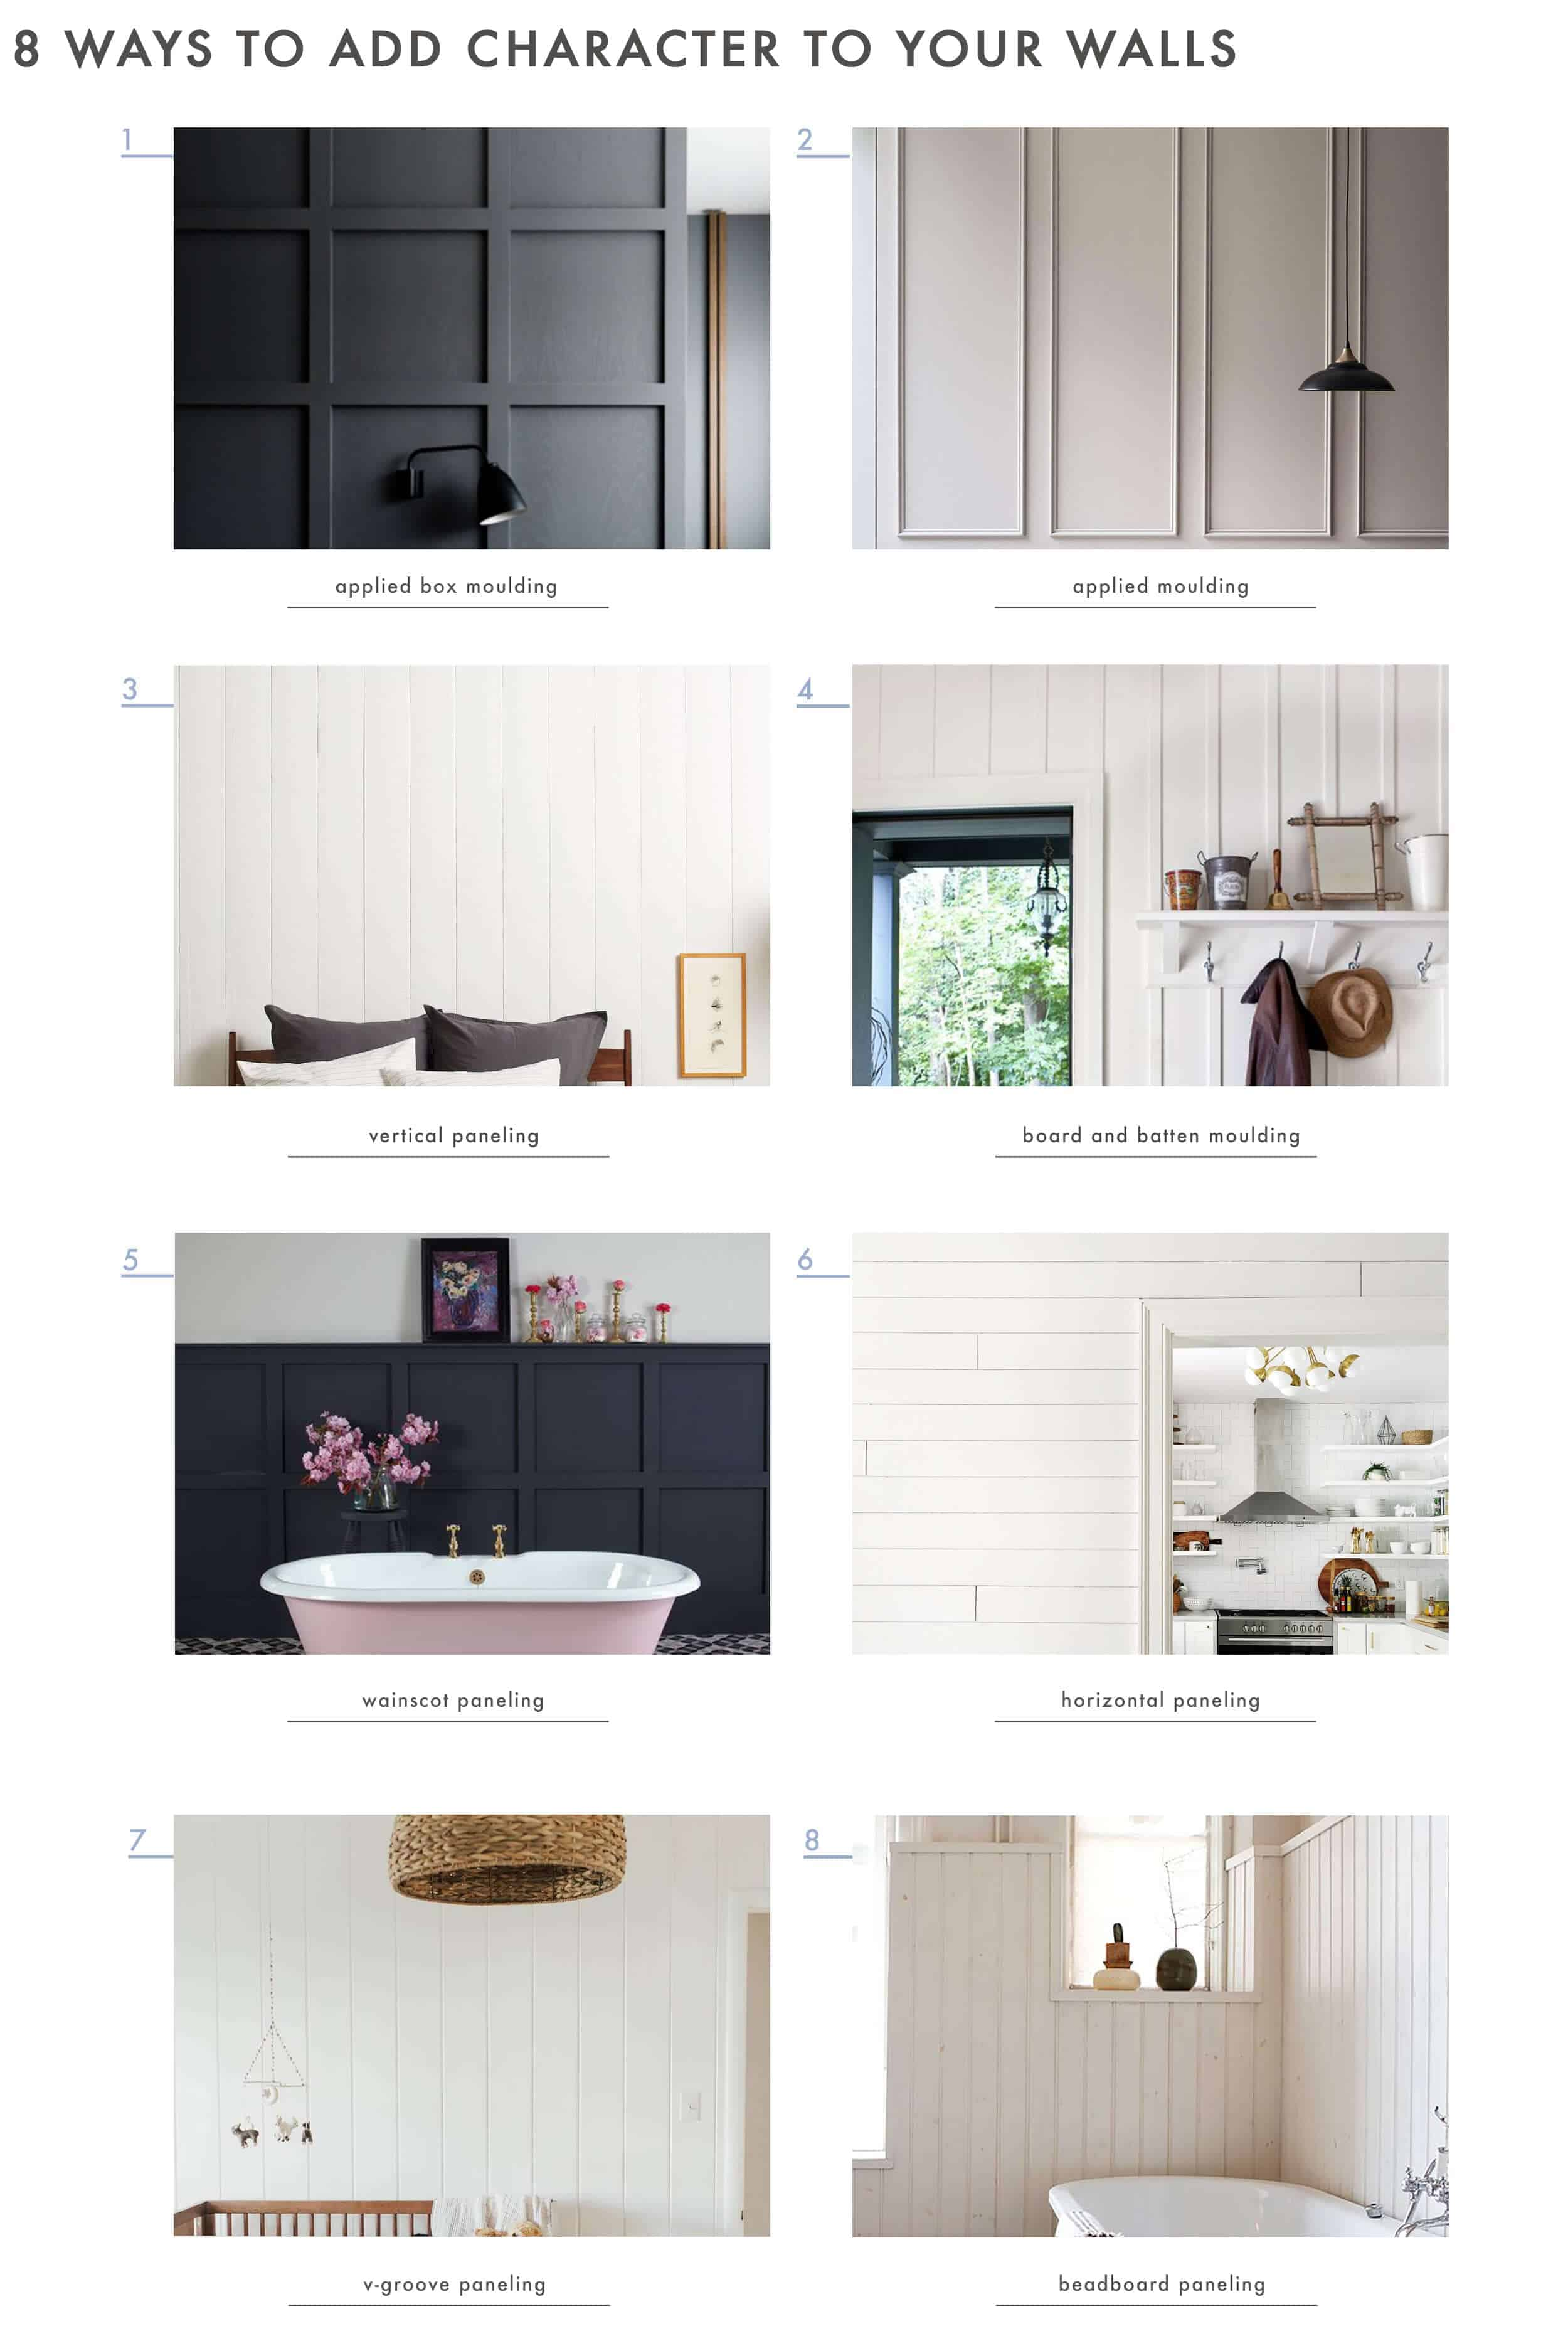 How To Add Character And Charm To Boring Architecture And Houses Wall Treatment 8ways